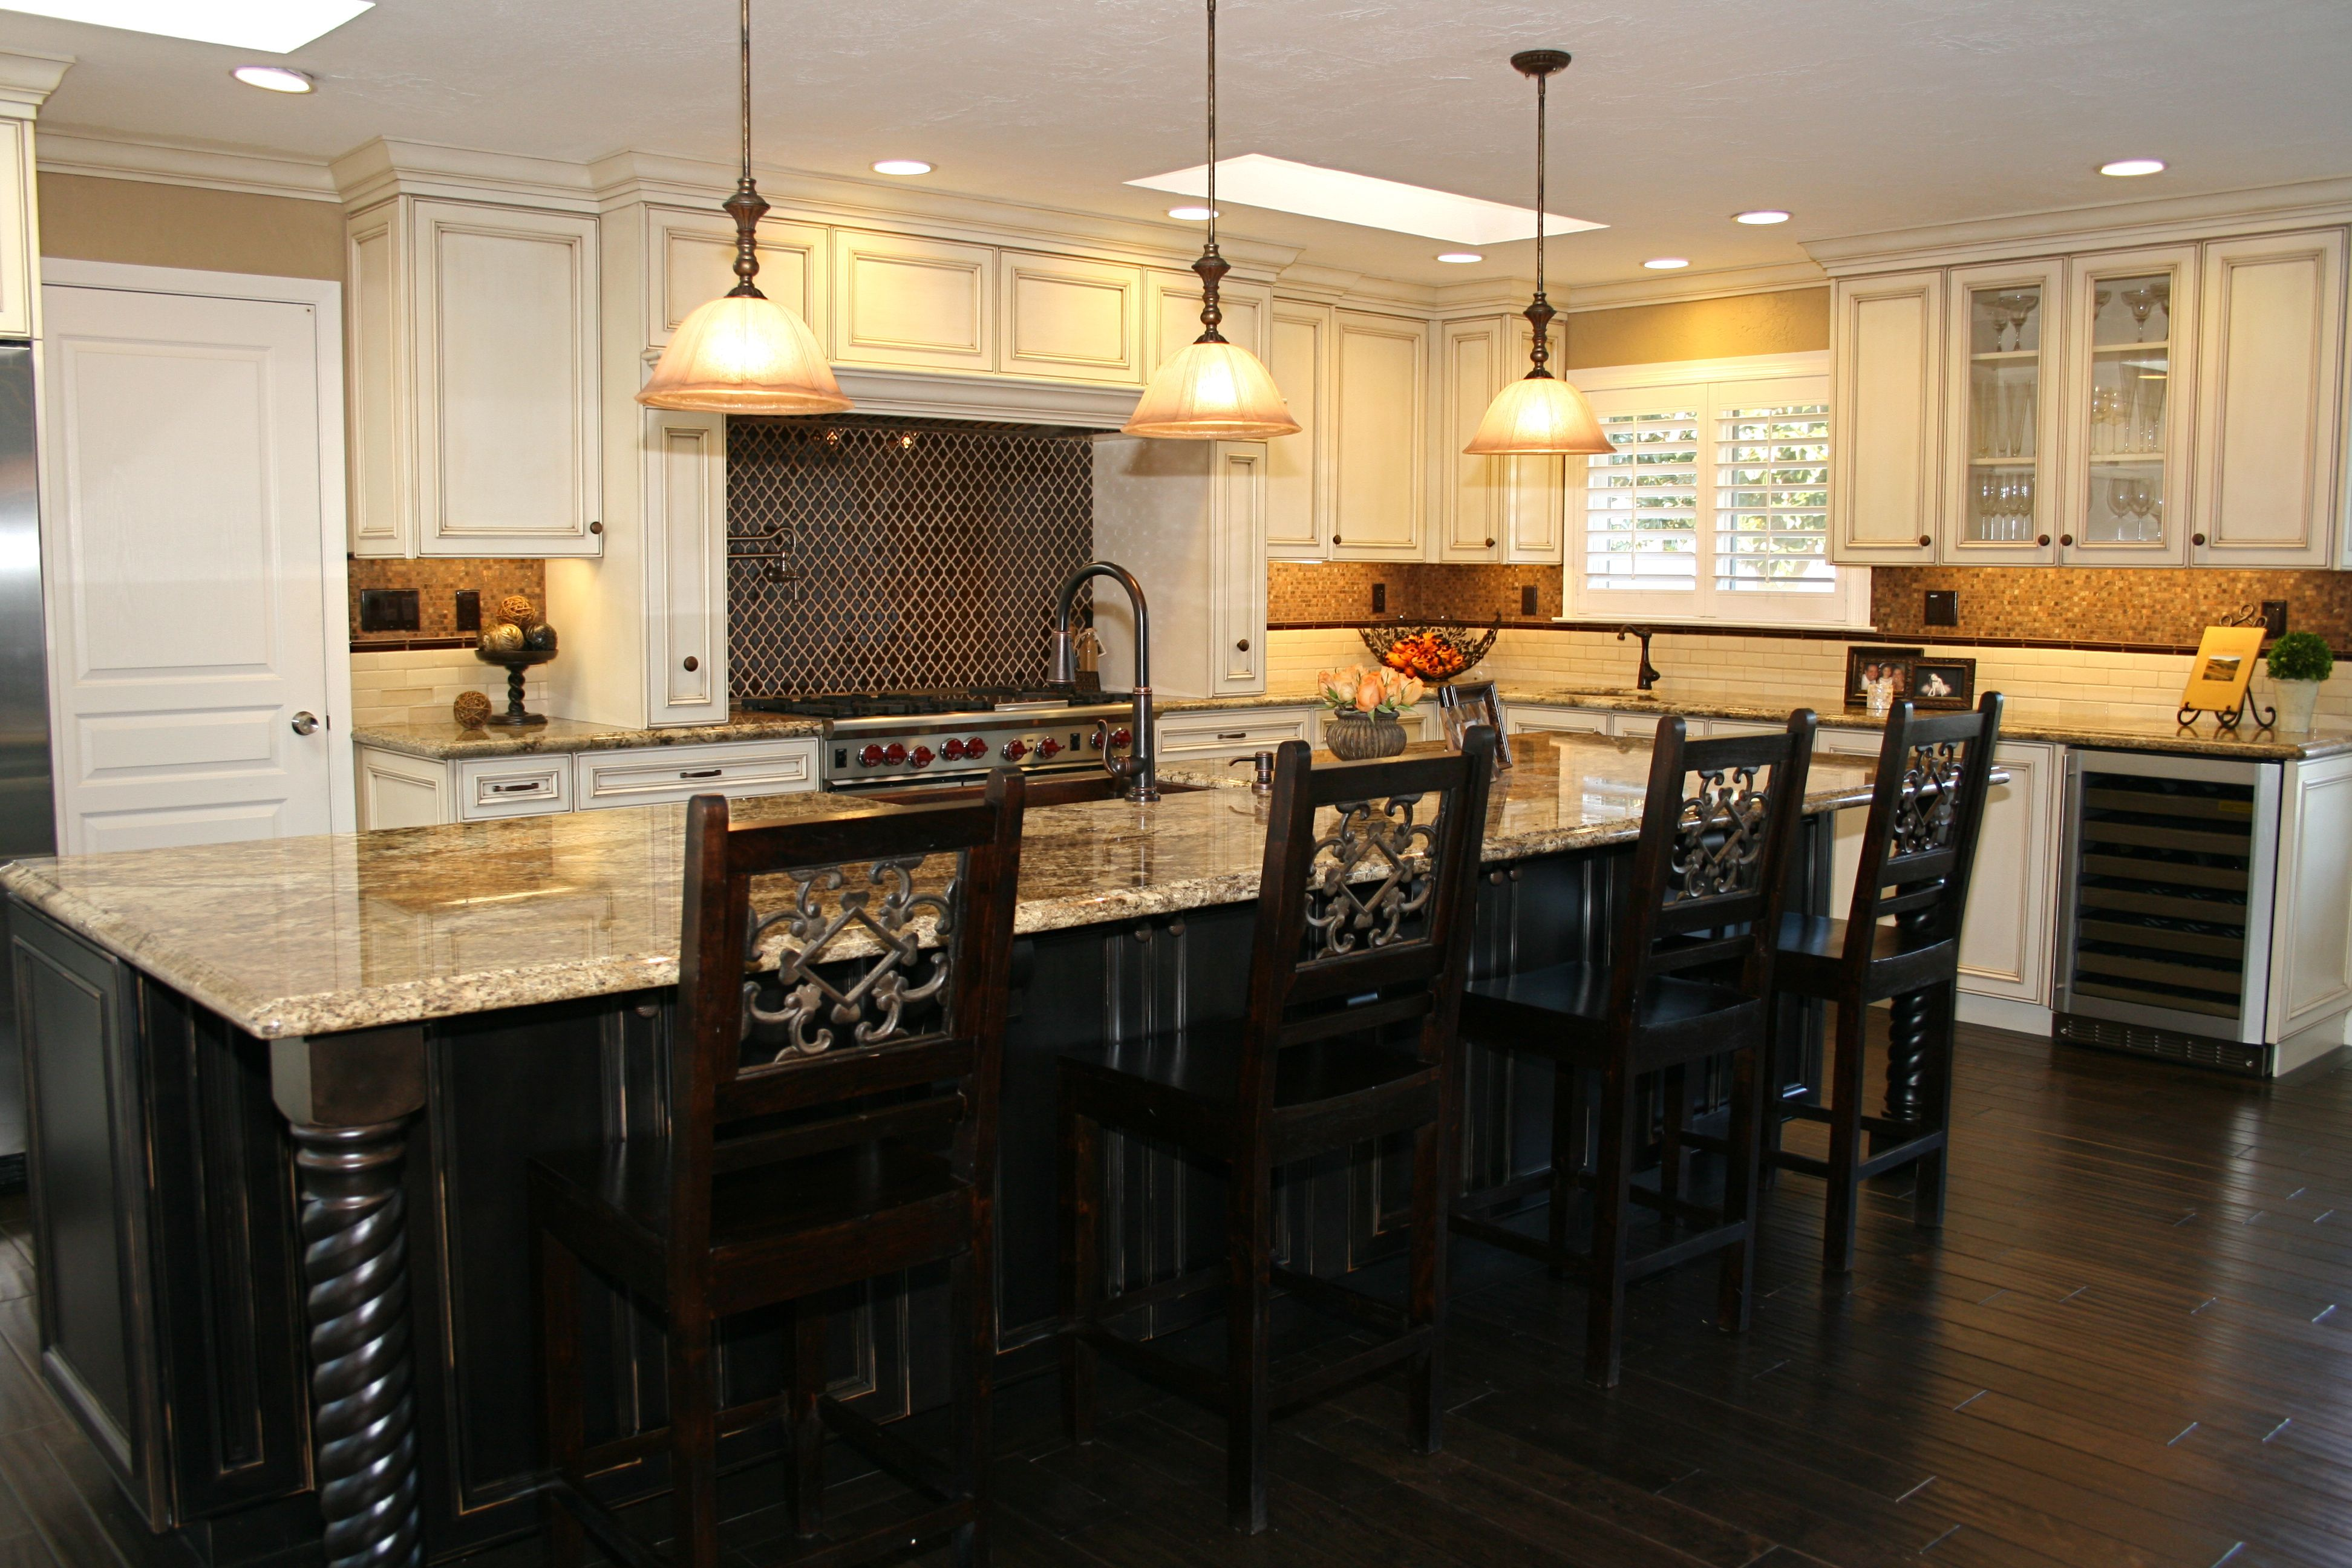 An Antique White Kitchen Cabinet And Furniture Yes No Home